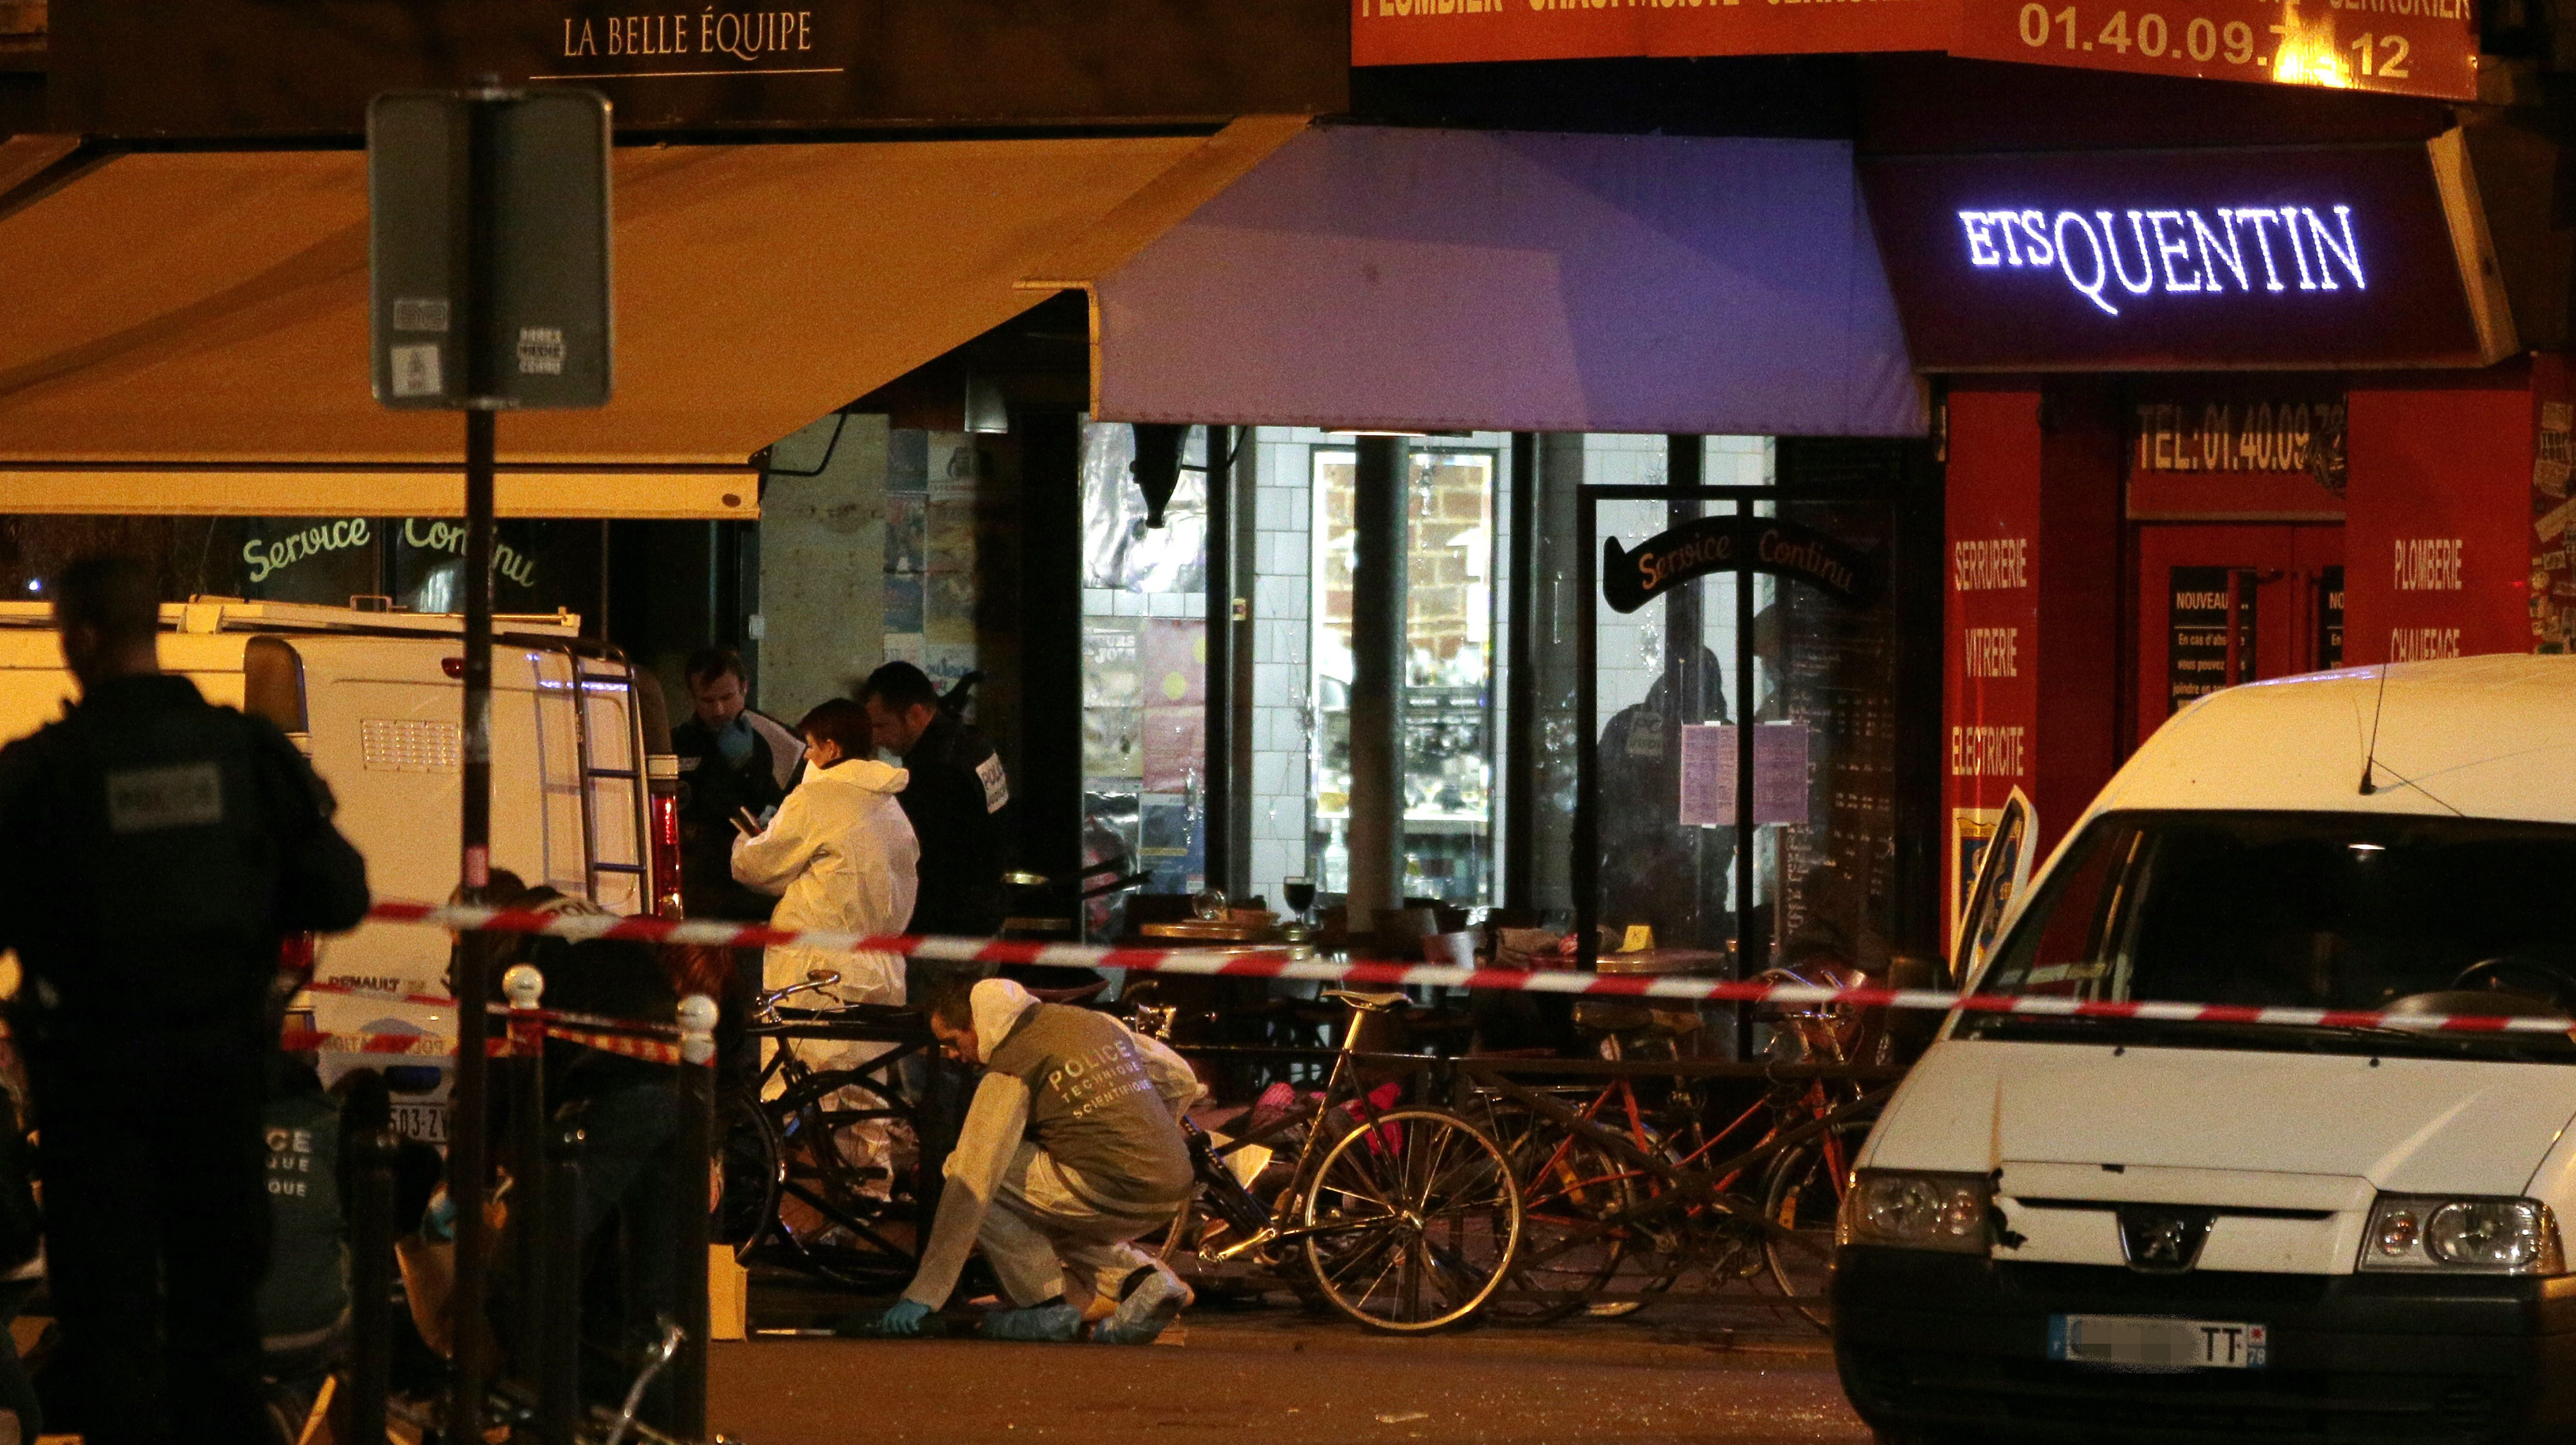 Forensic police search for evidences outside the La Belle Equipe cafe, rue de Charonne, at the site of an attack. (Getty)